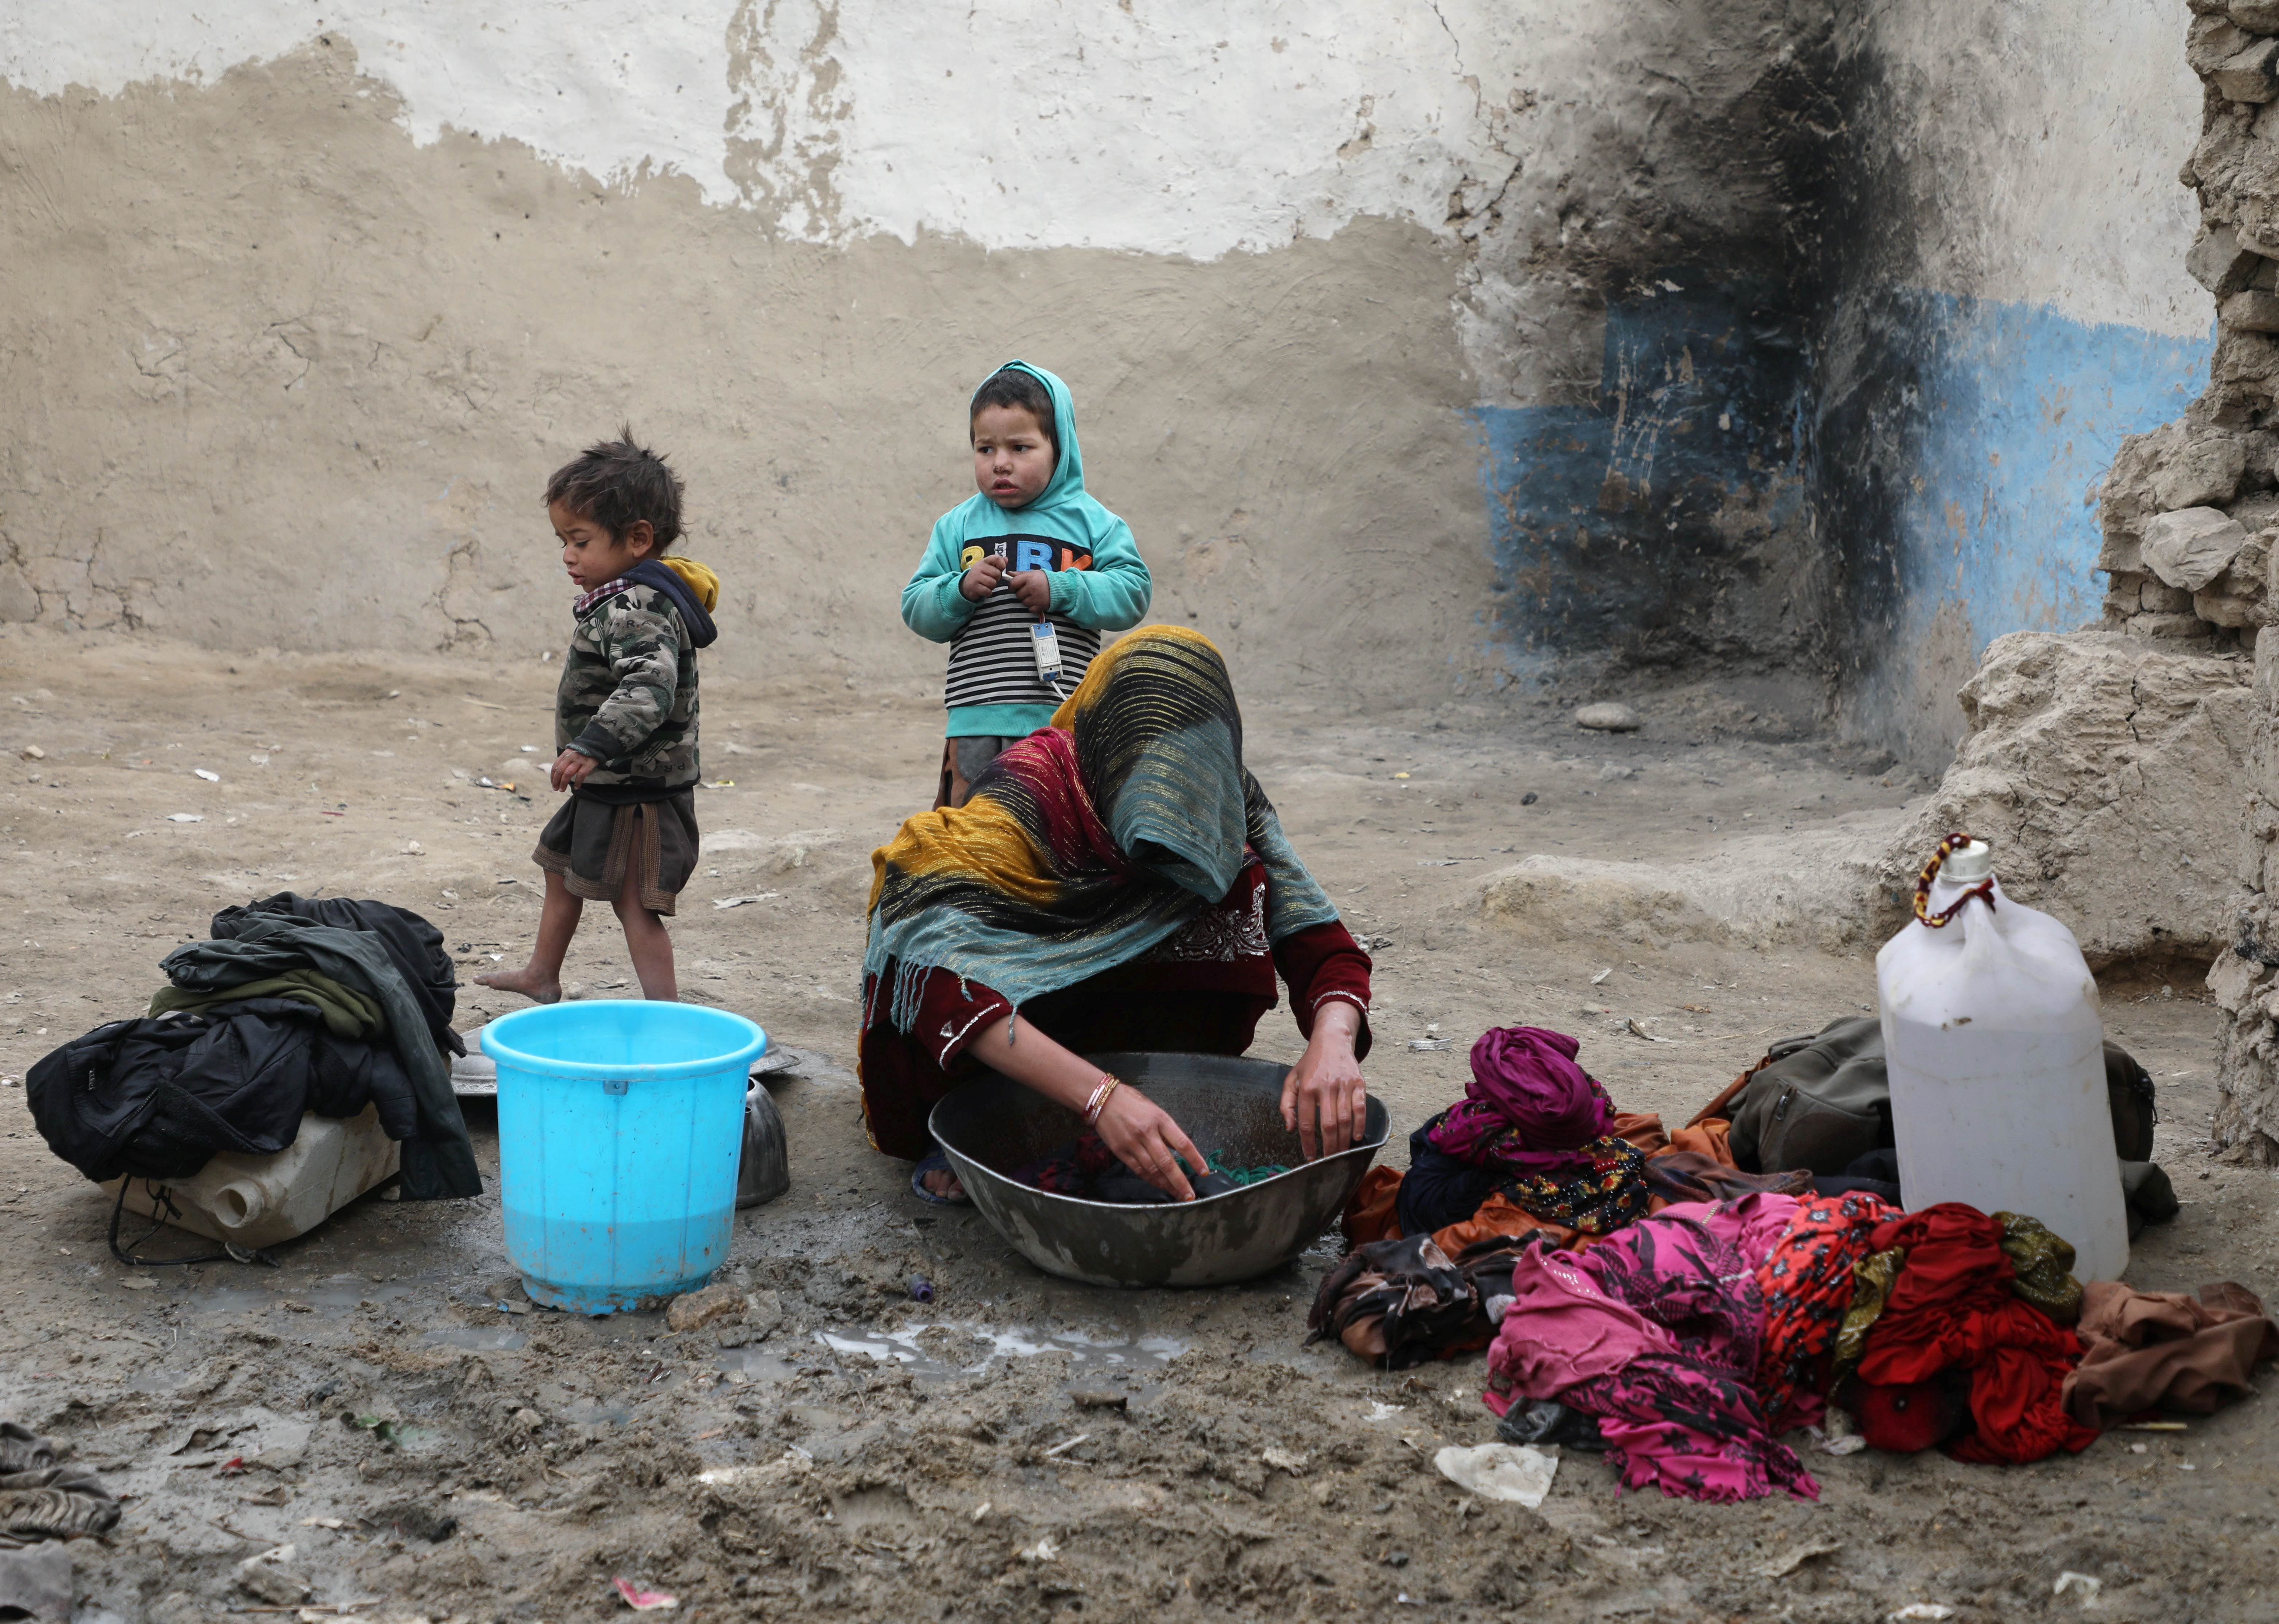 An internally displaced Afghan woman washes clothes outside her shelter on the outskirts of Kabul, Afghanistan February 3, 2021. REUTERS/Omar Sobhani